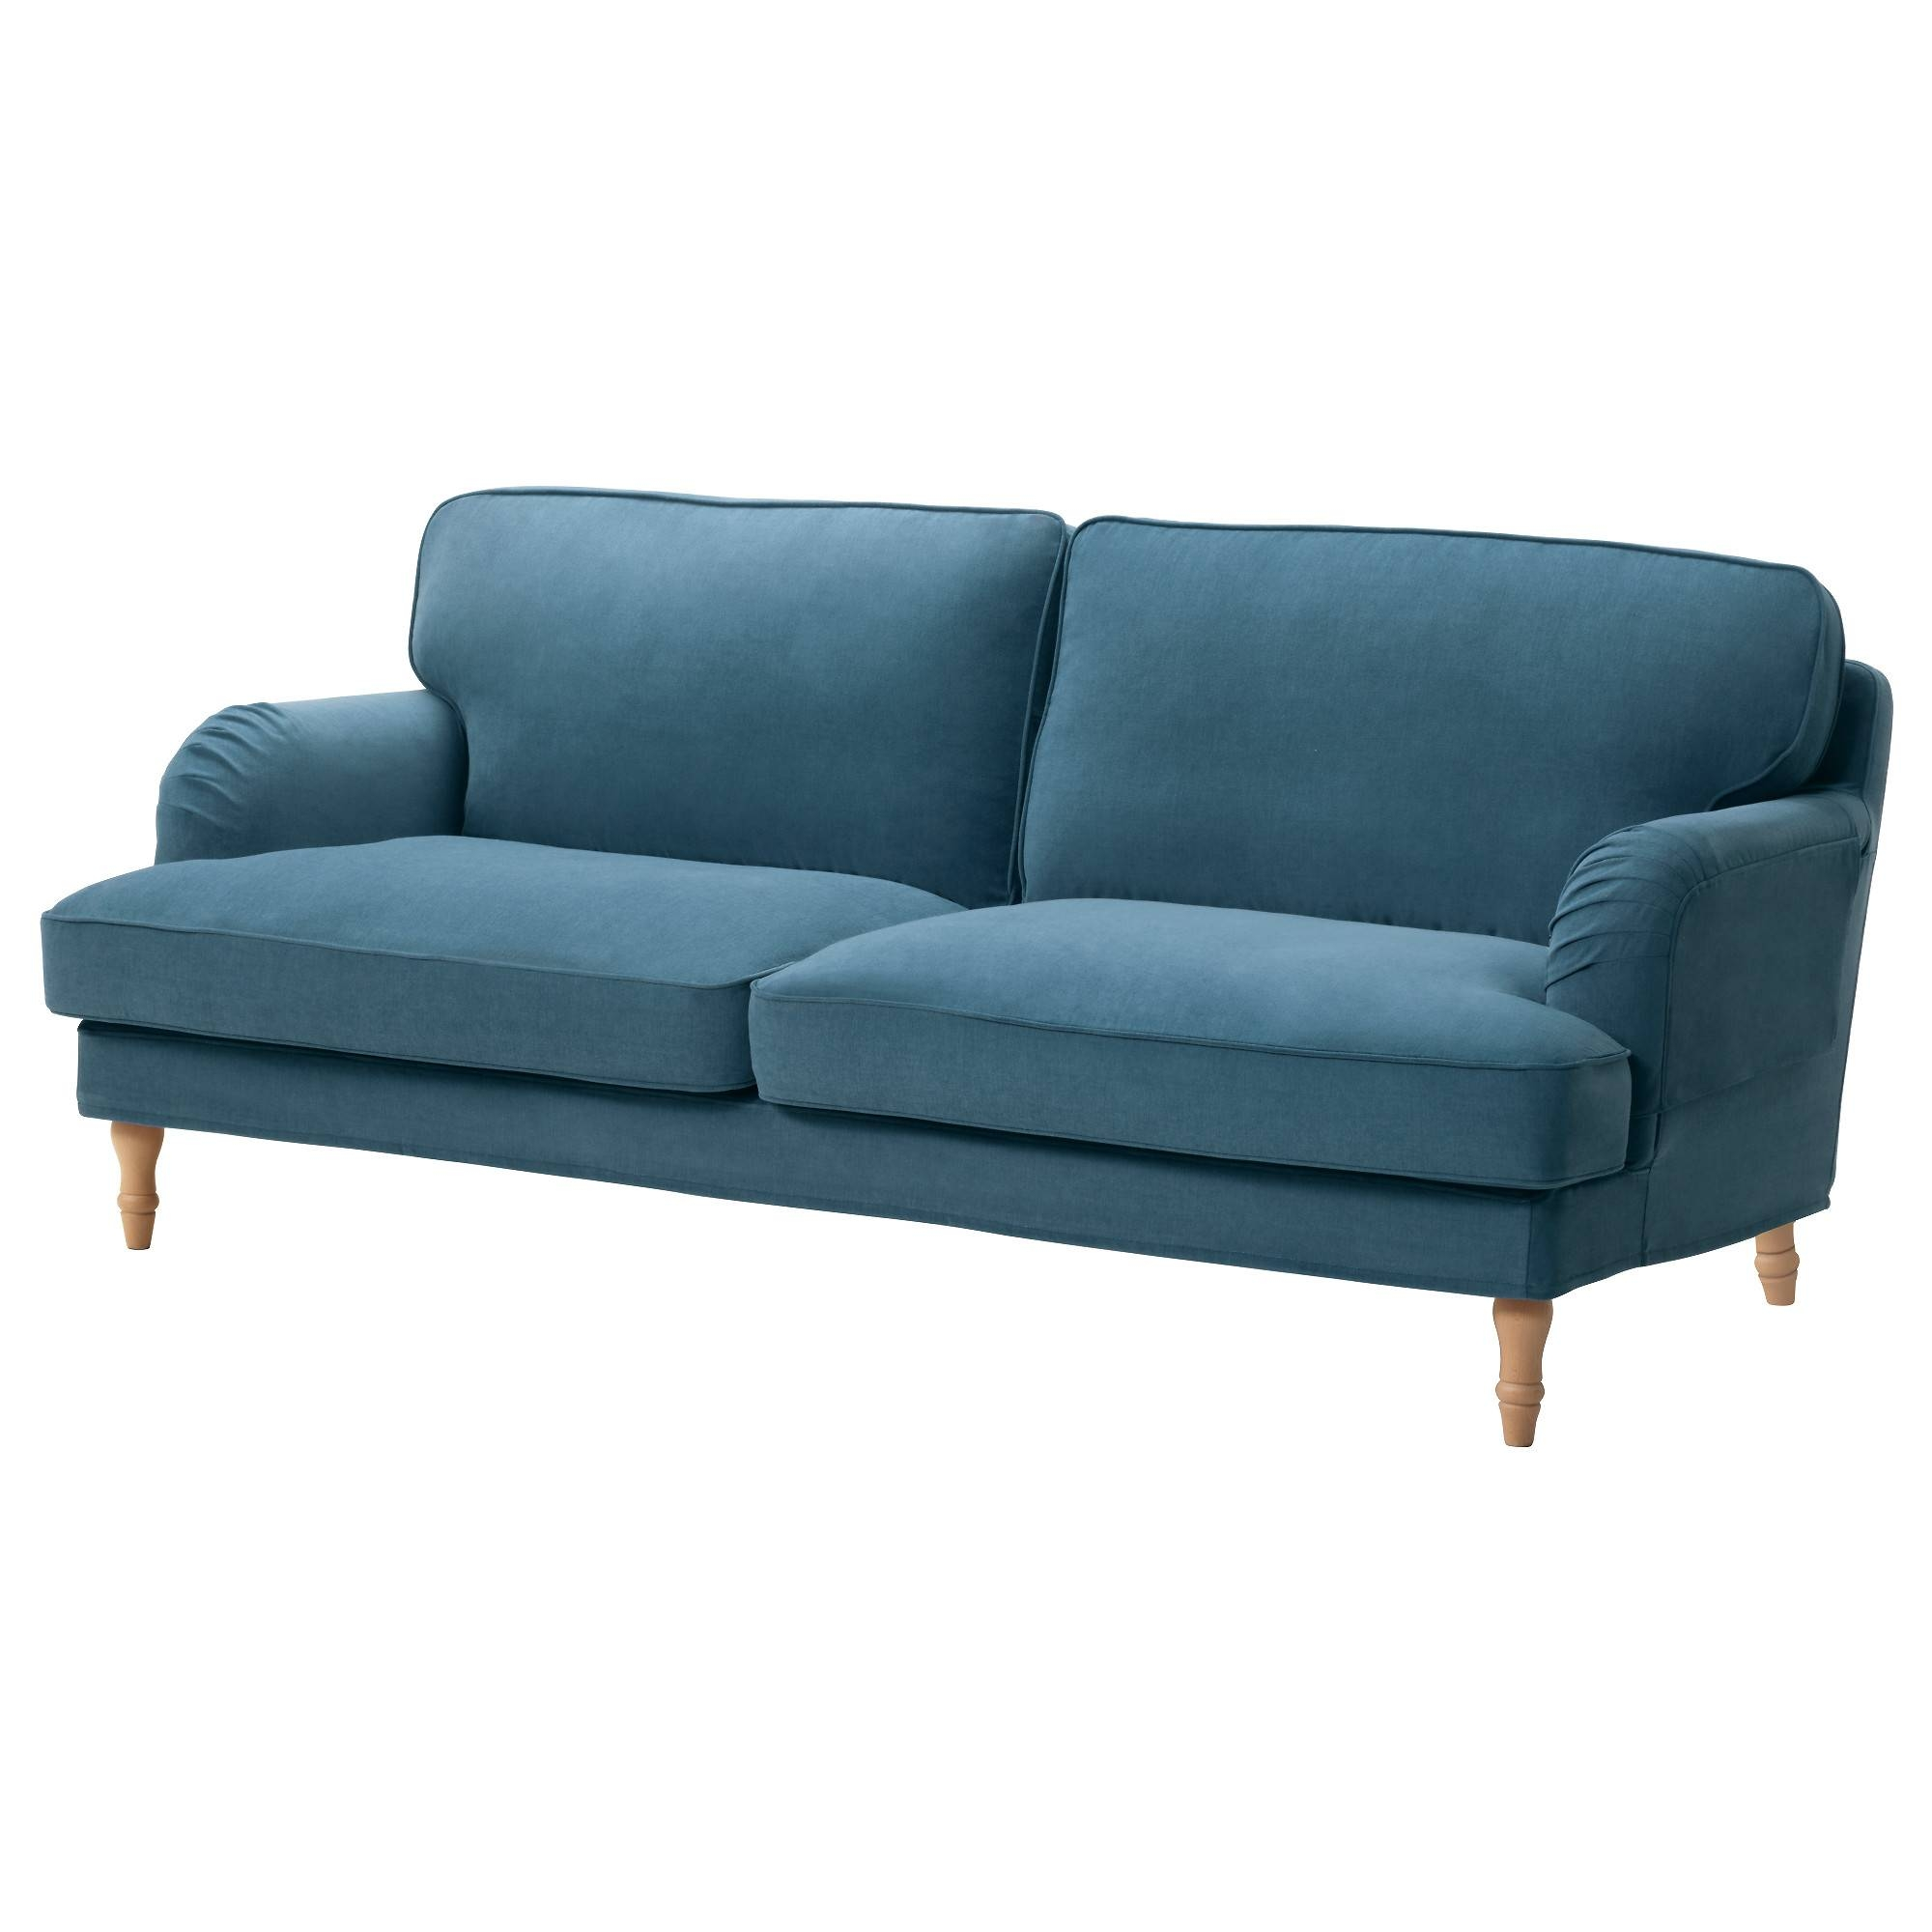 Stocksund Sofa - Ljungen Blue, Light Brown - Ikea intended for Sofas (Image 13 of 15)